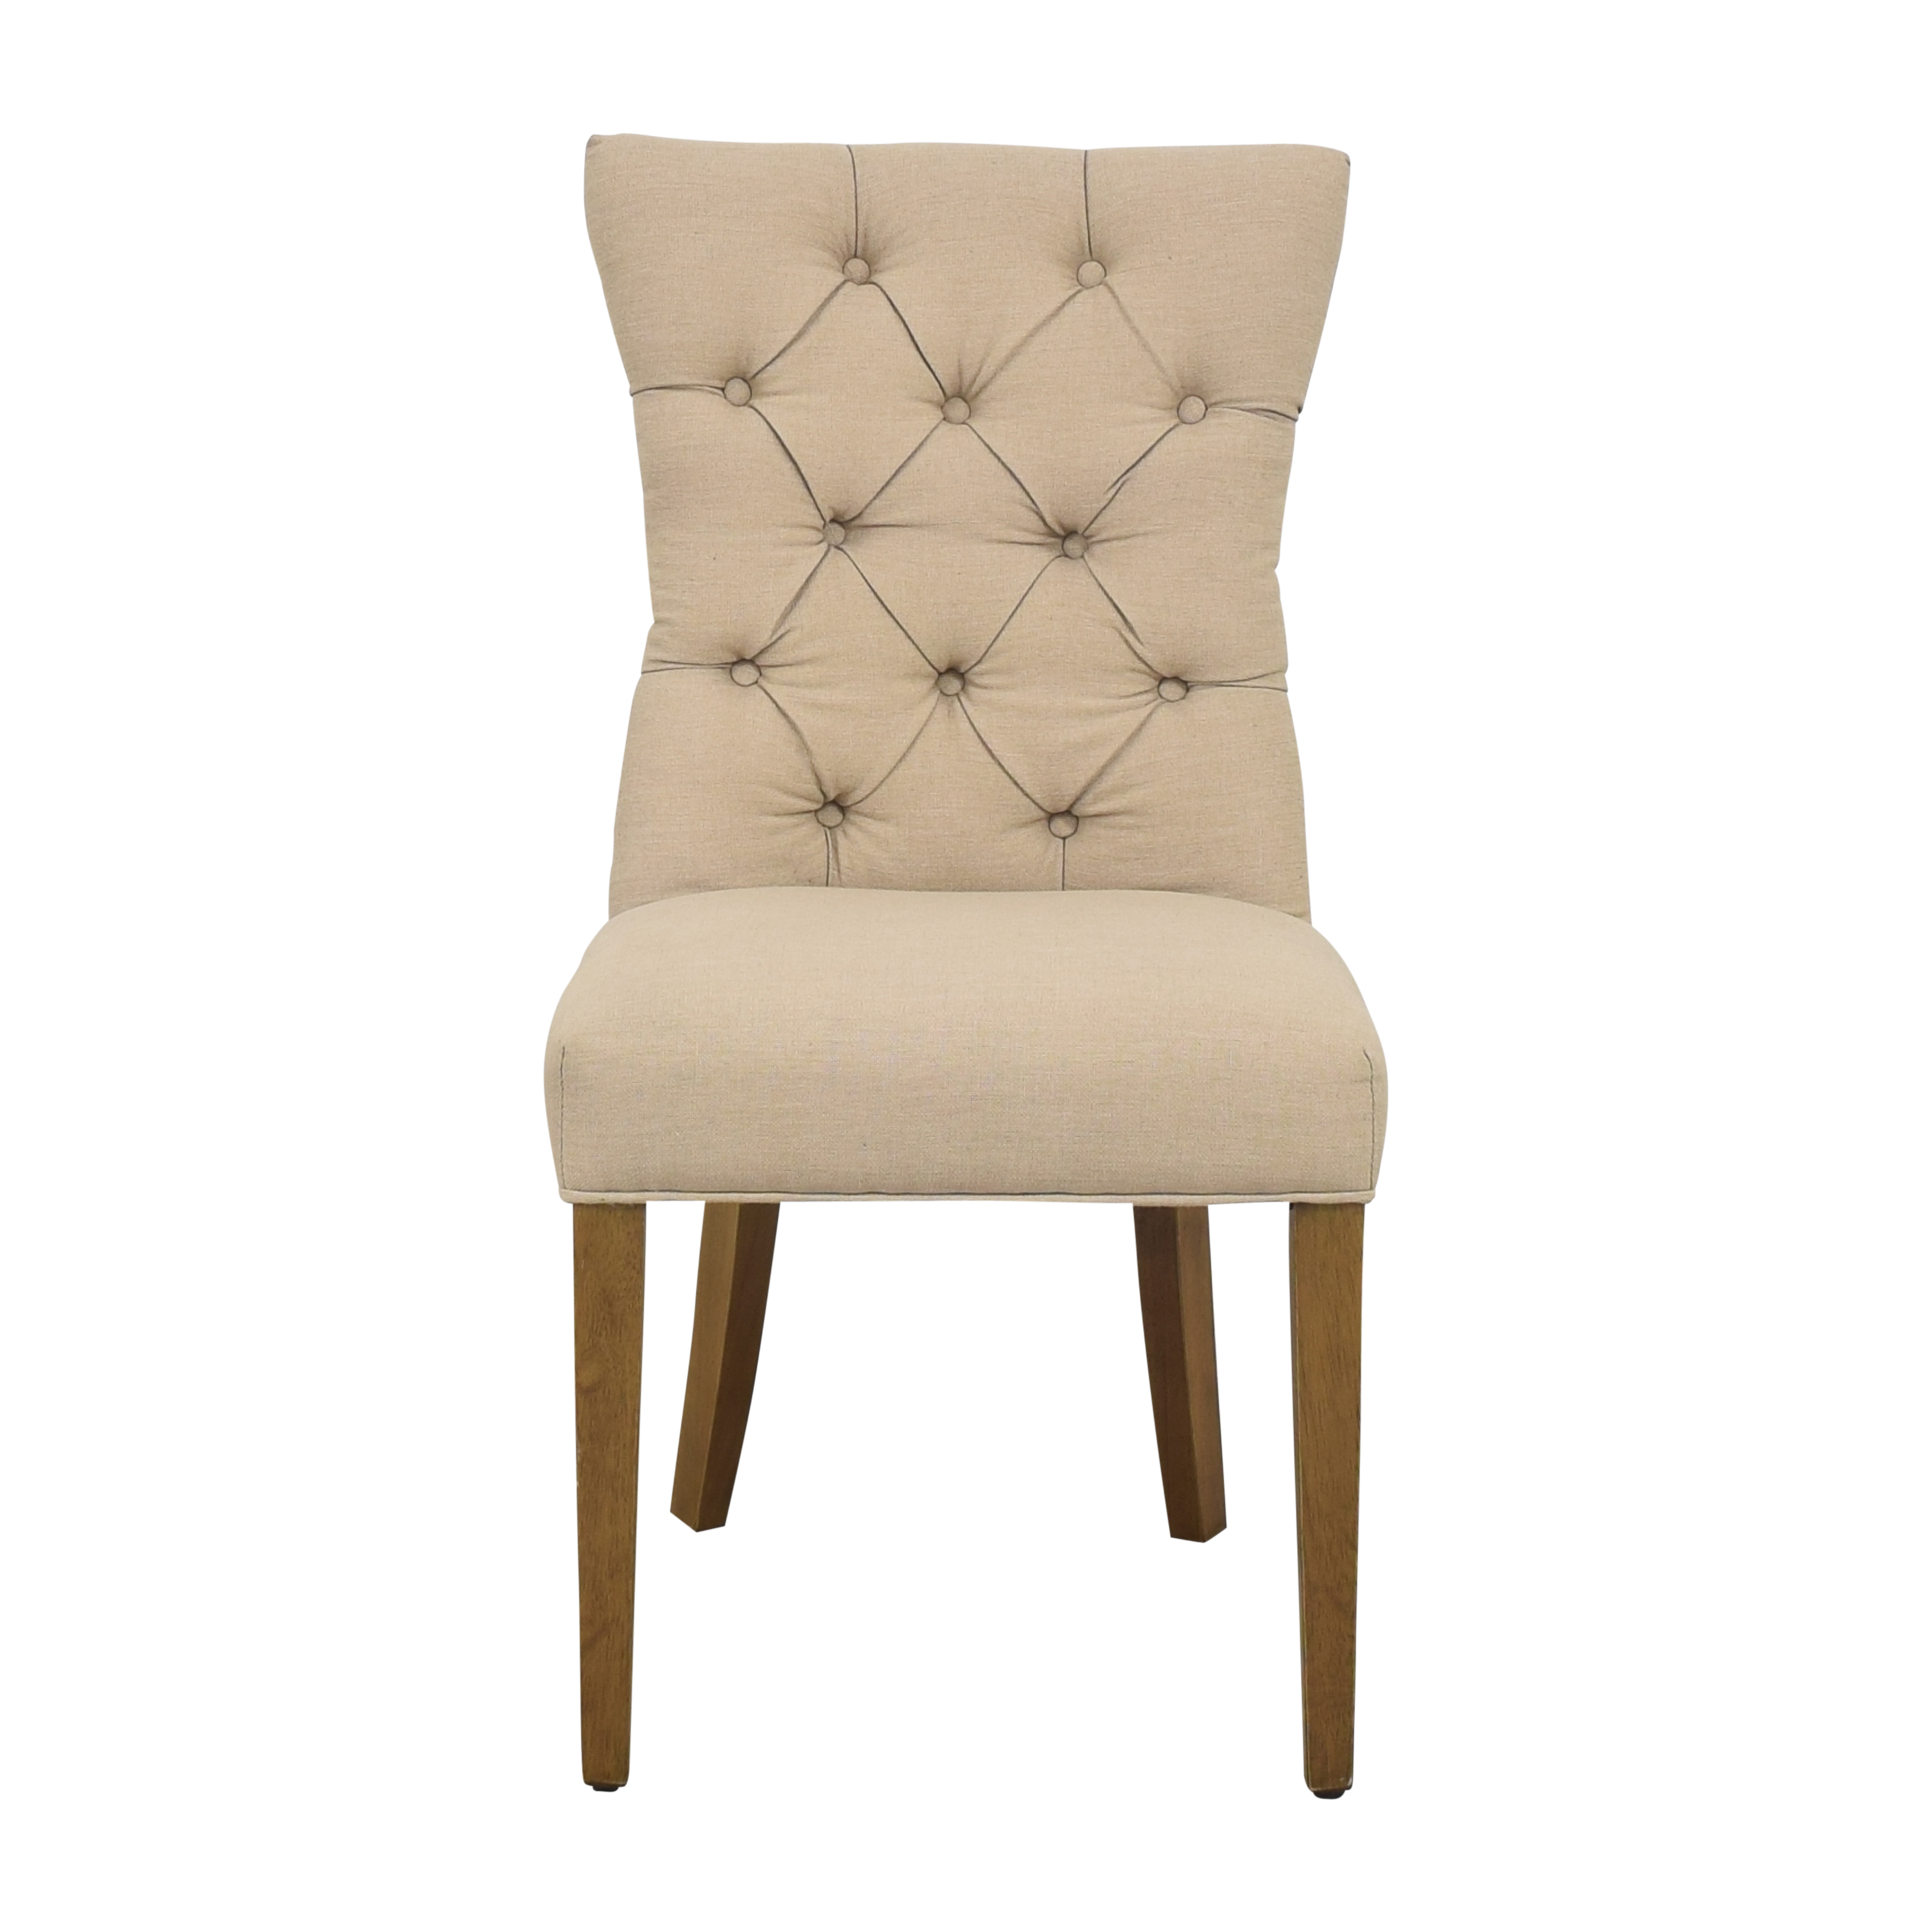 Surya Surya Matisse Tufted Dining Chair for sale